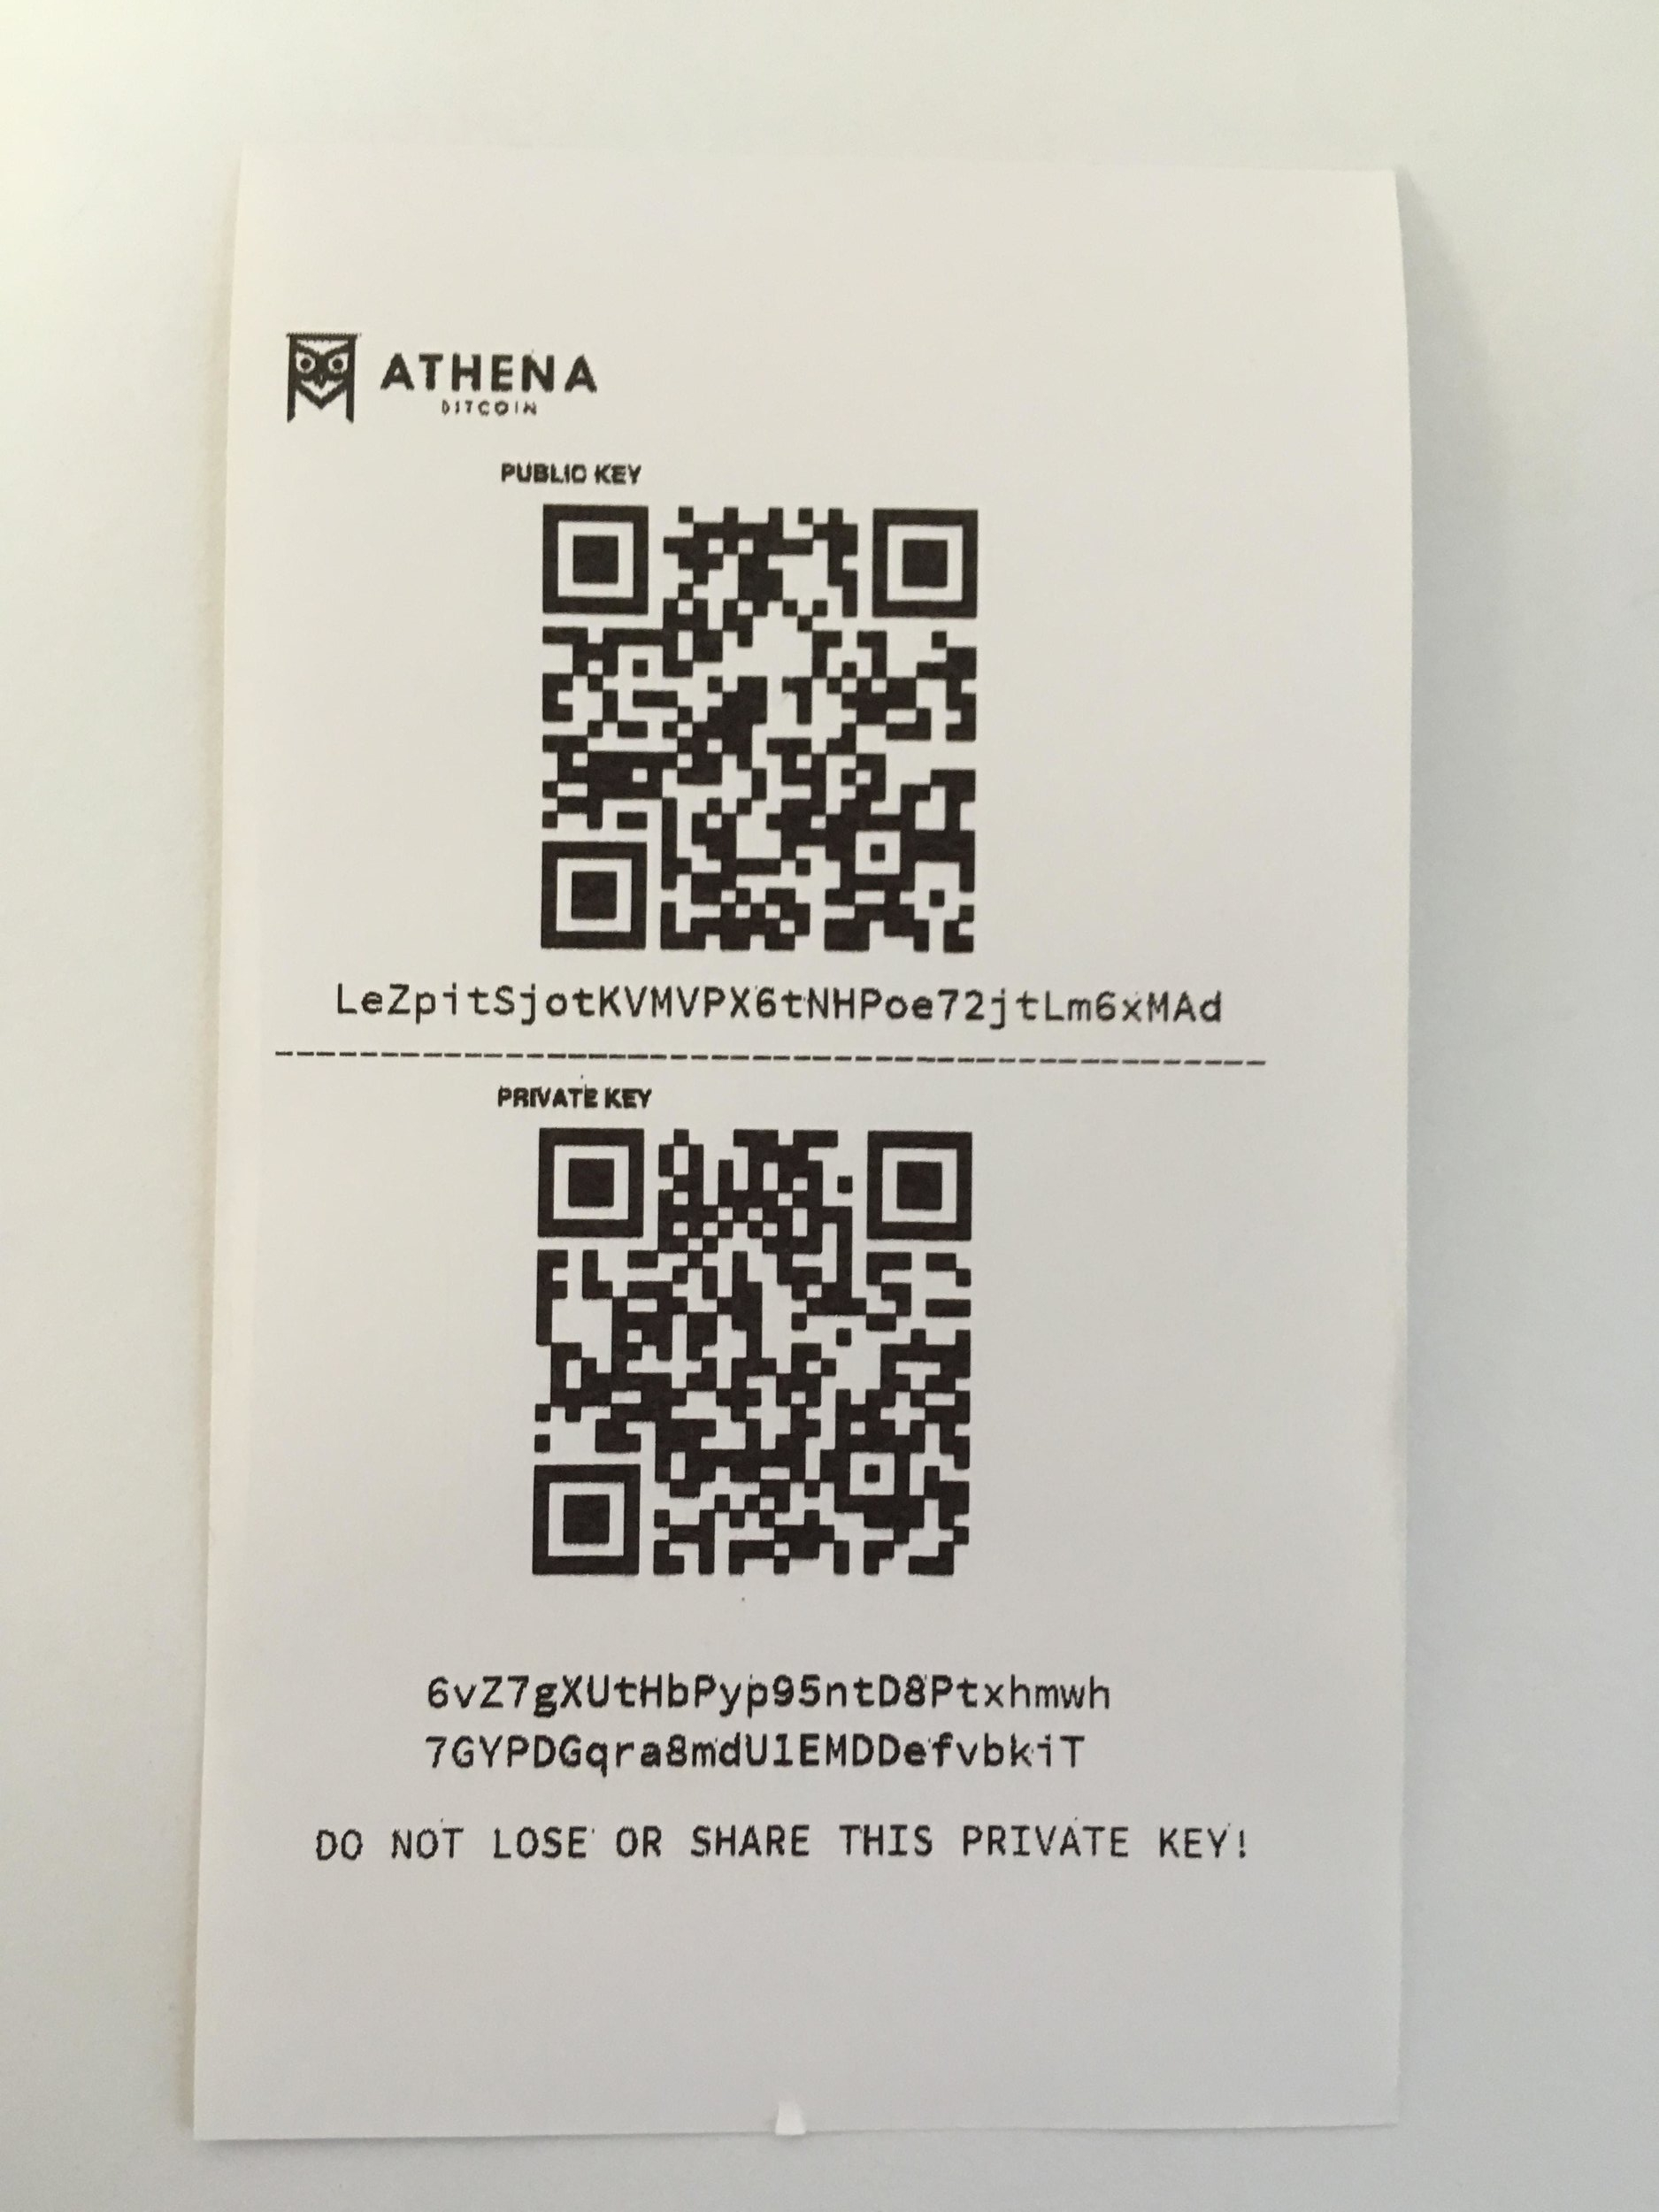 How To Use A Paper Wallet Athena Bitcoin